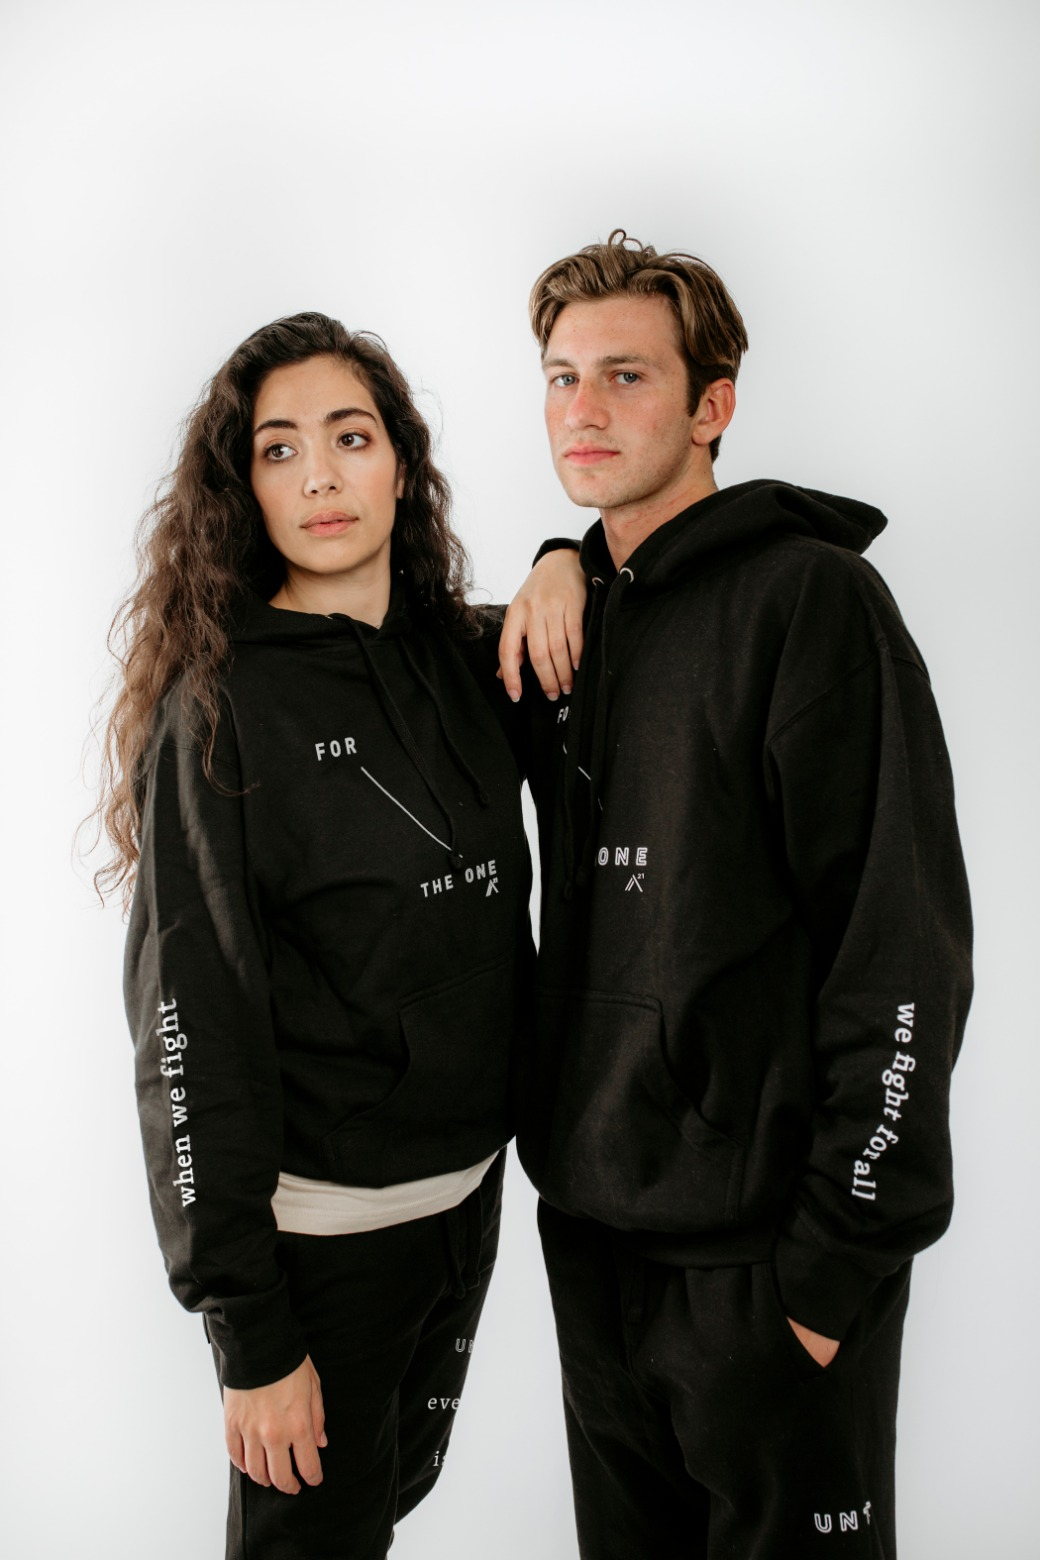 Tracksuit: Sweatshirt and Trackpants: For The ONE 4